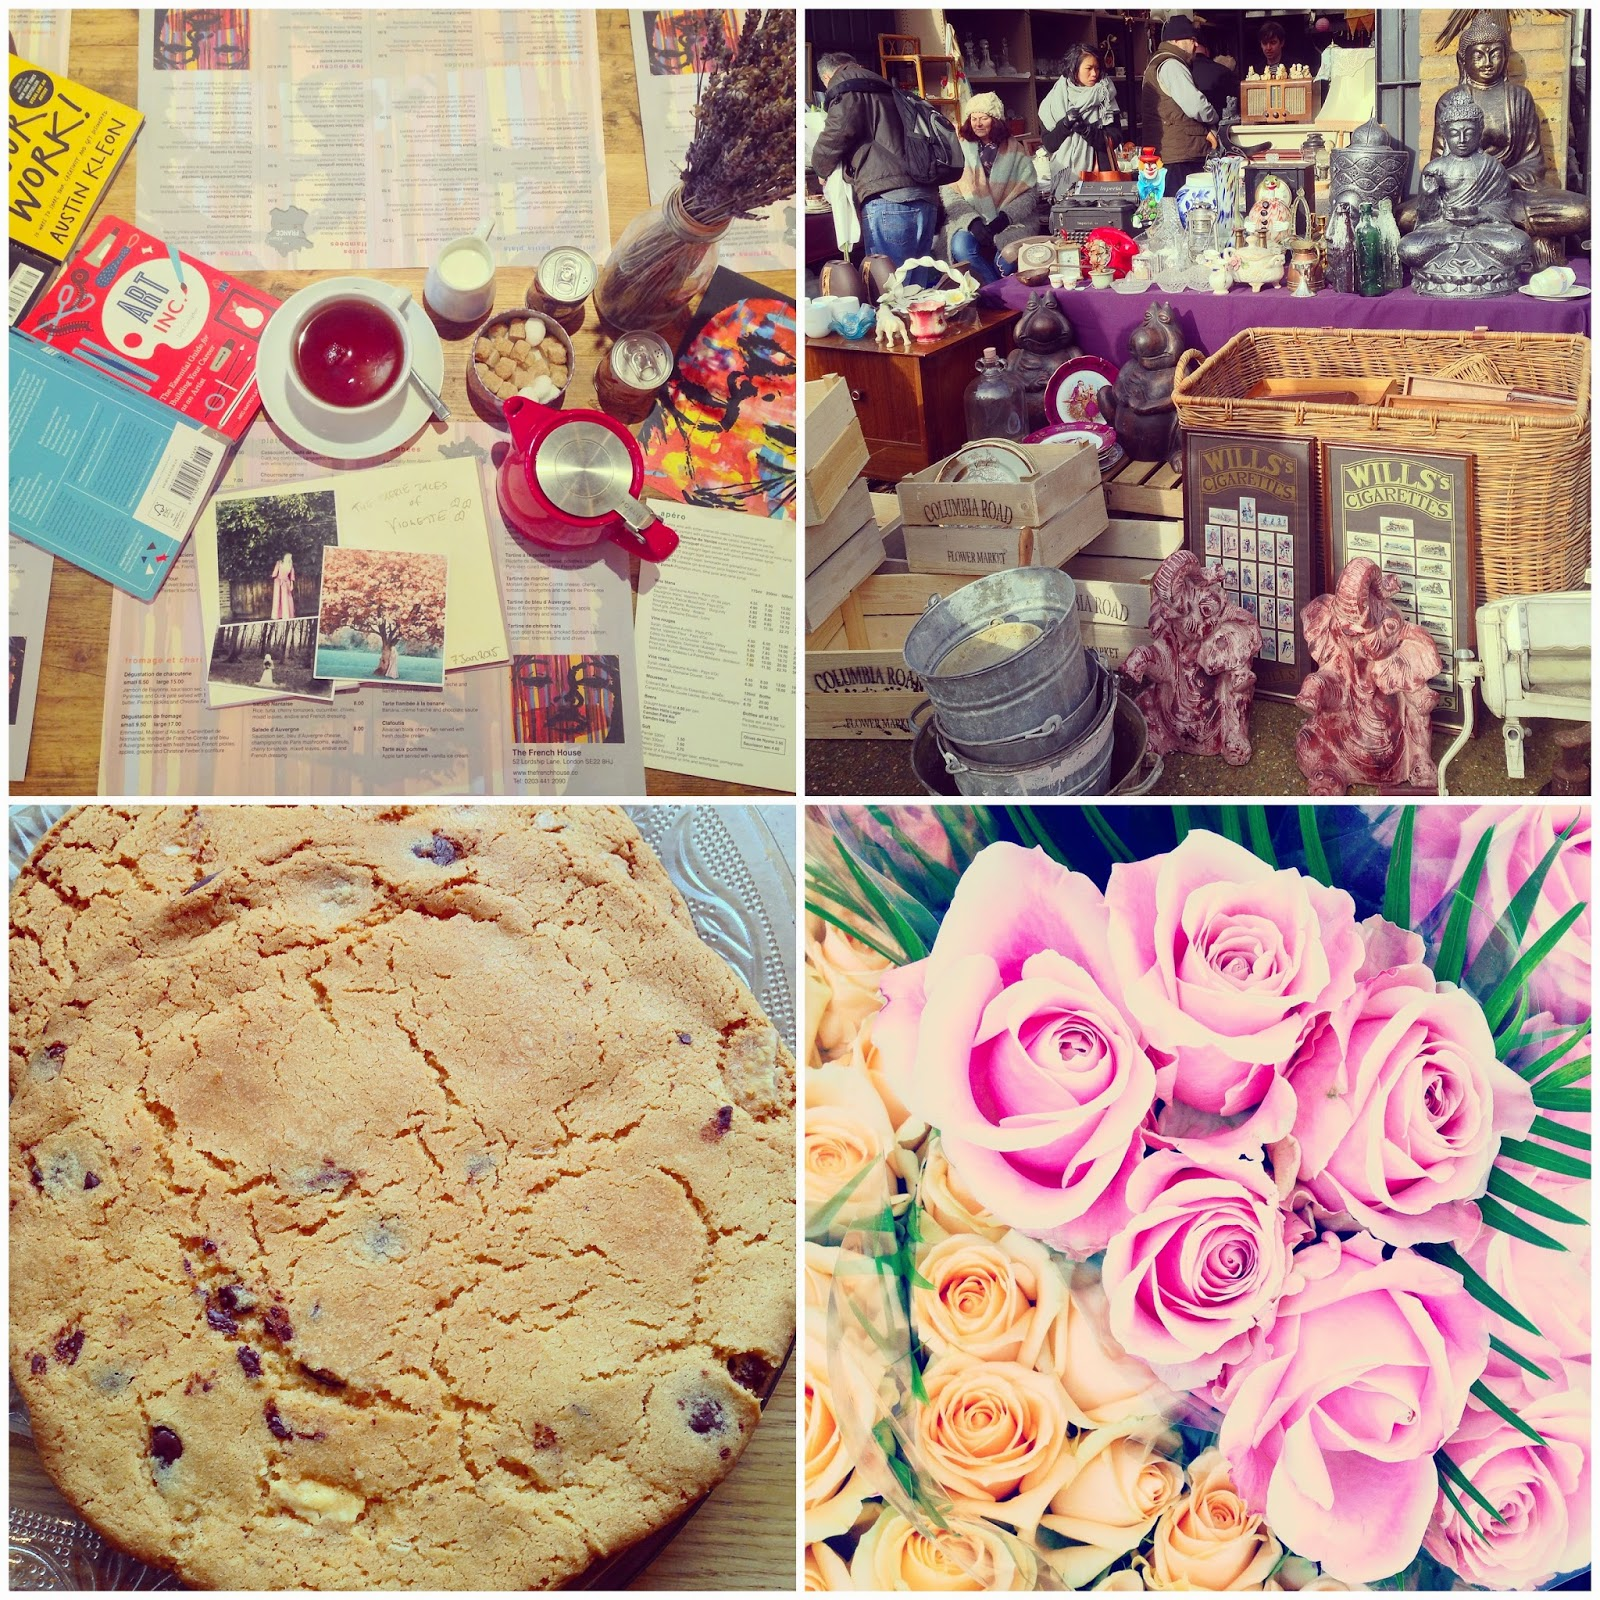 The French House Cafe, Columbia Road Flower market and a chocolate cookie from The Albion Cafe